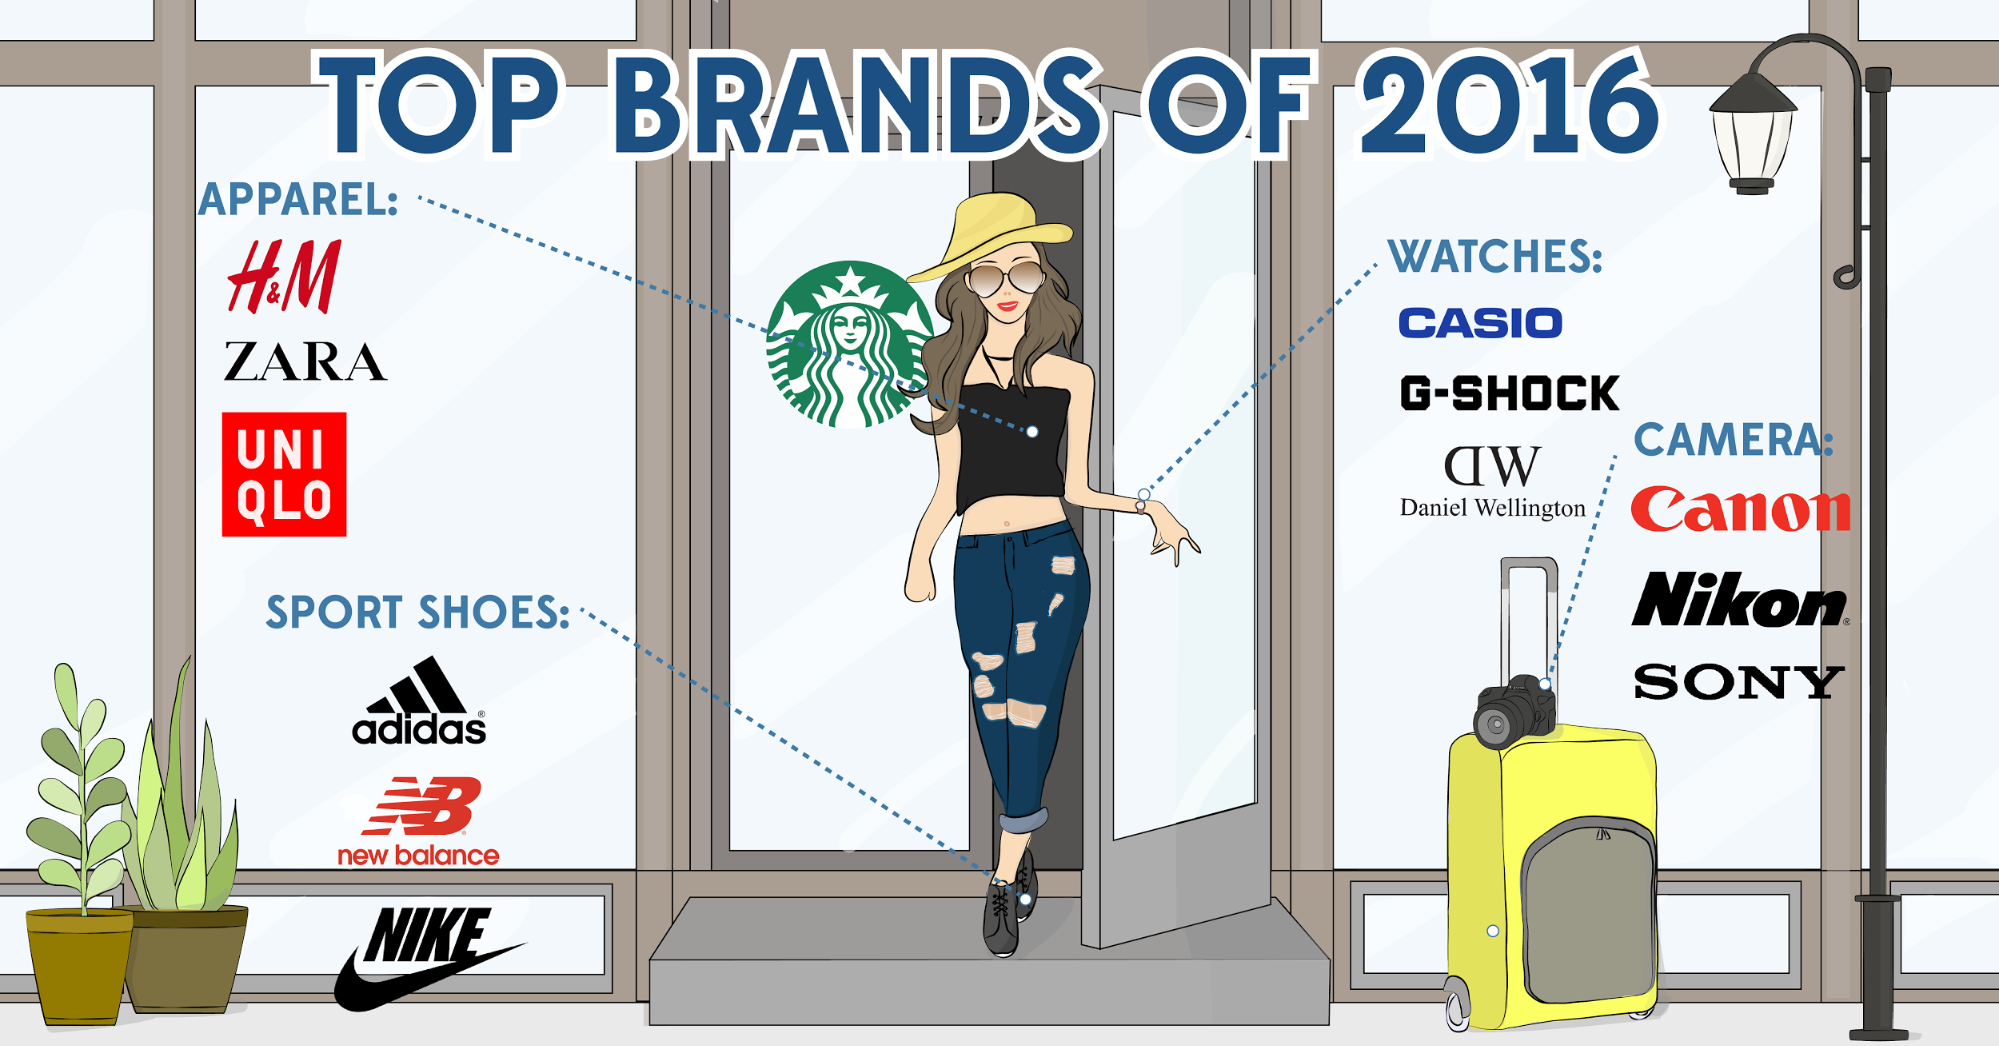 2016 Top-Of-Mind Brands in Asia as Chosen by Singapore's Millennials